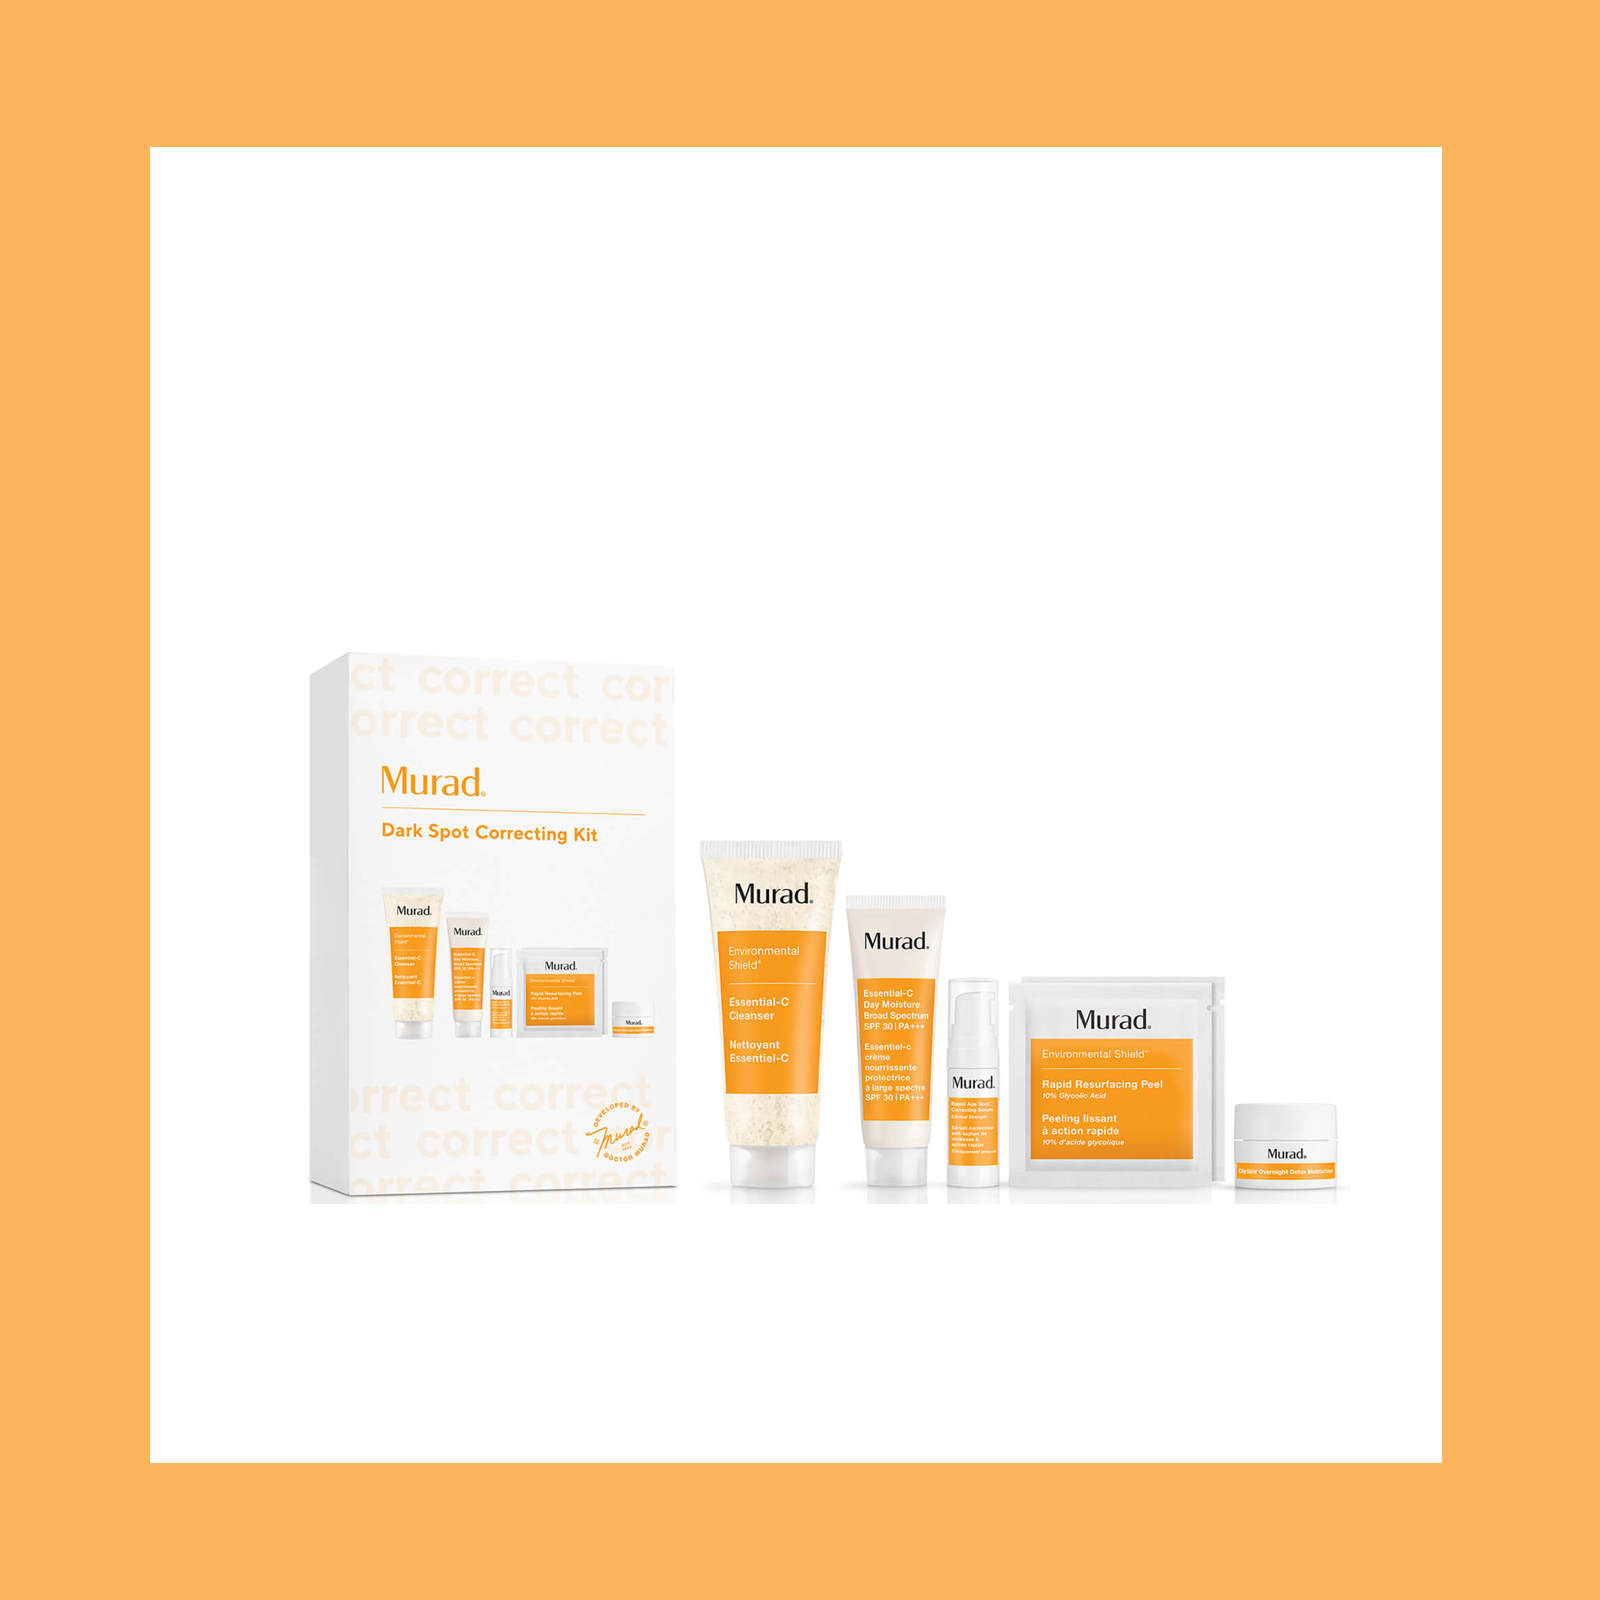 Murad Dark Spot Correcting Starter Kit 美白淡斑套组